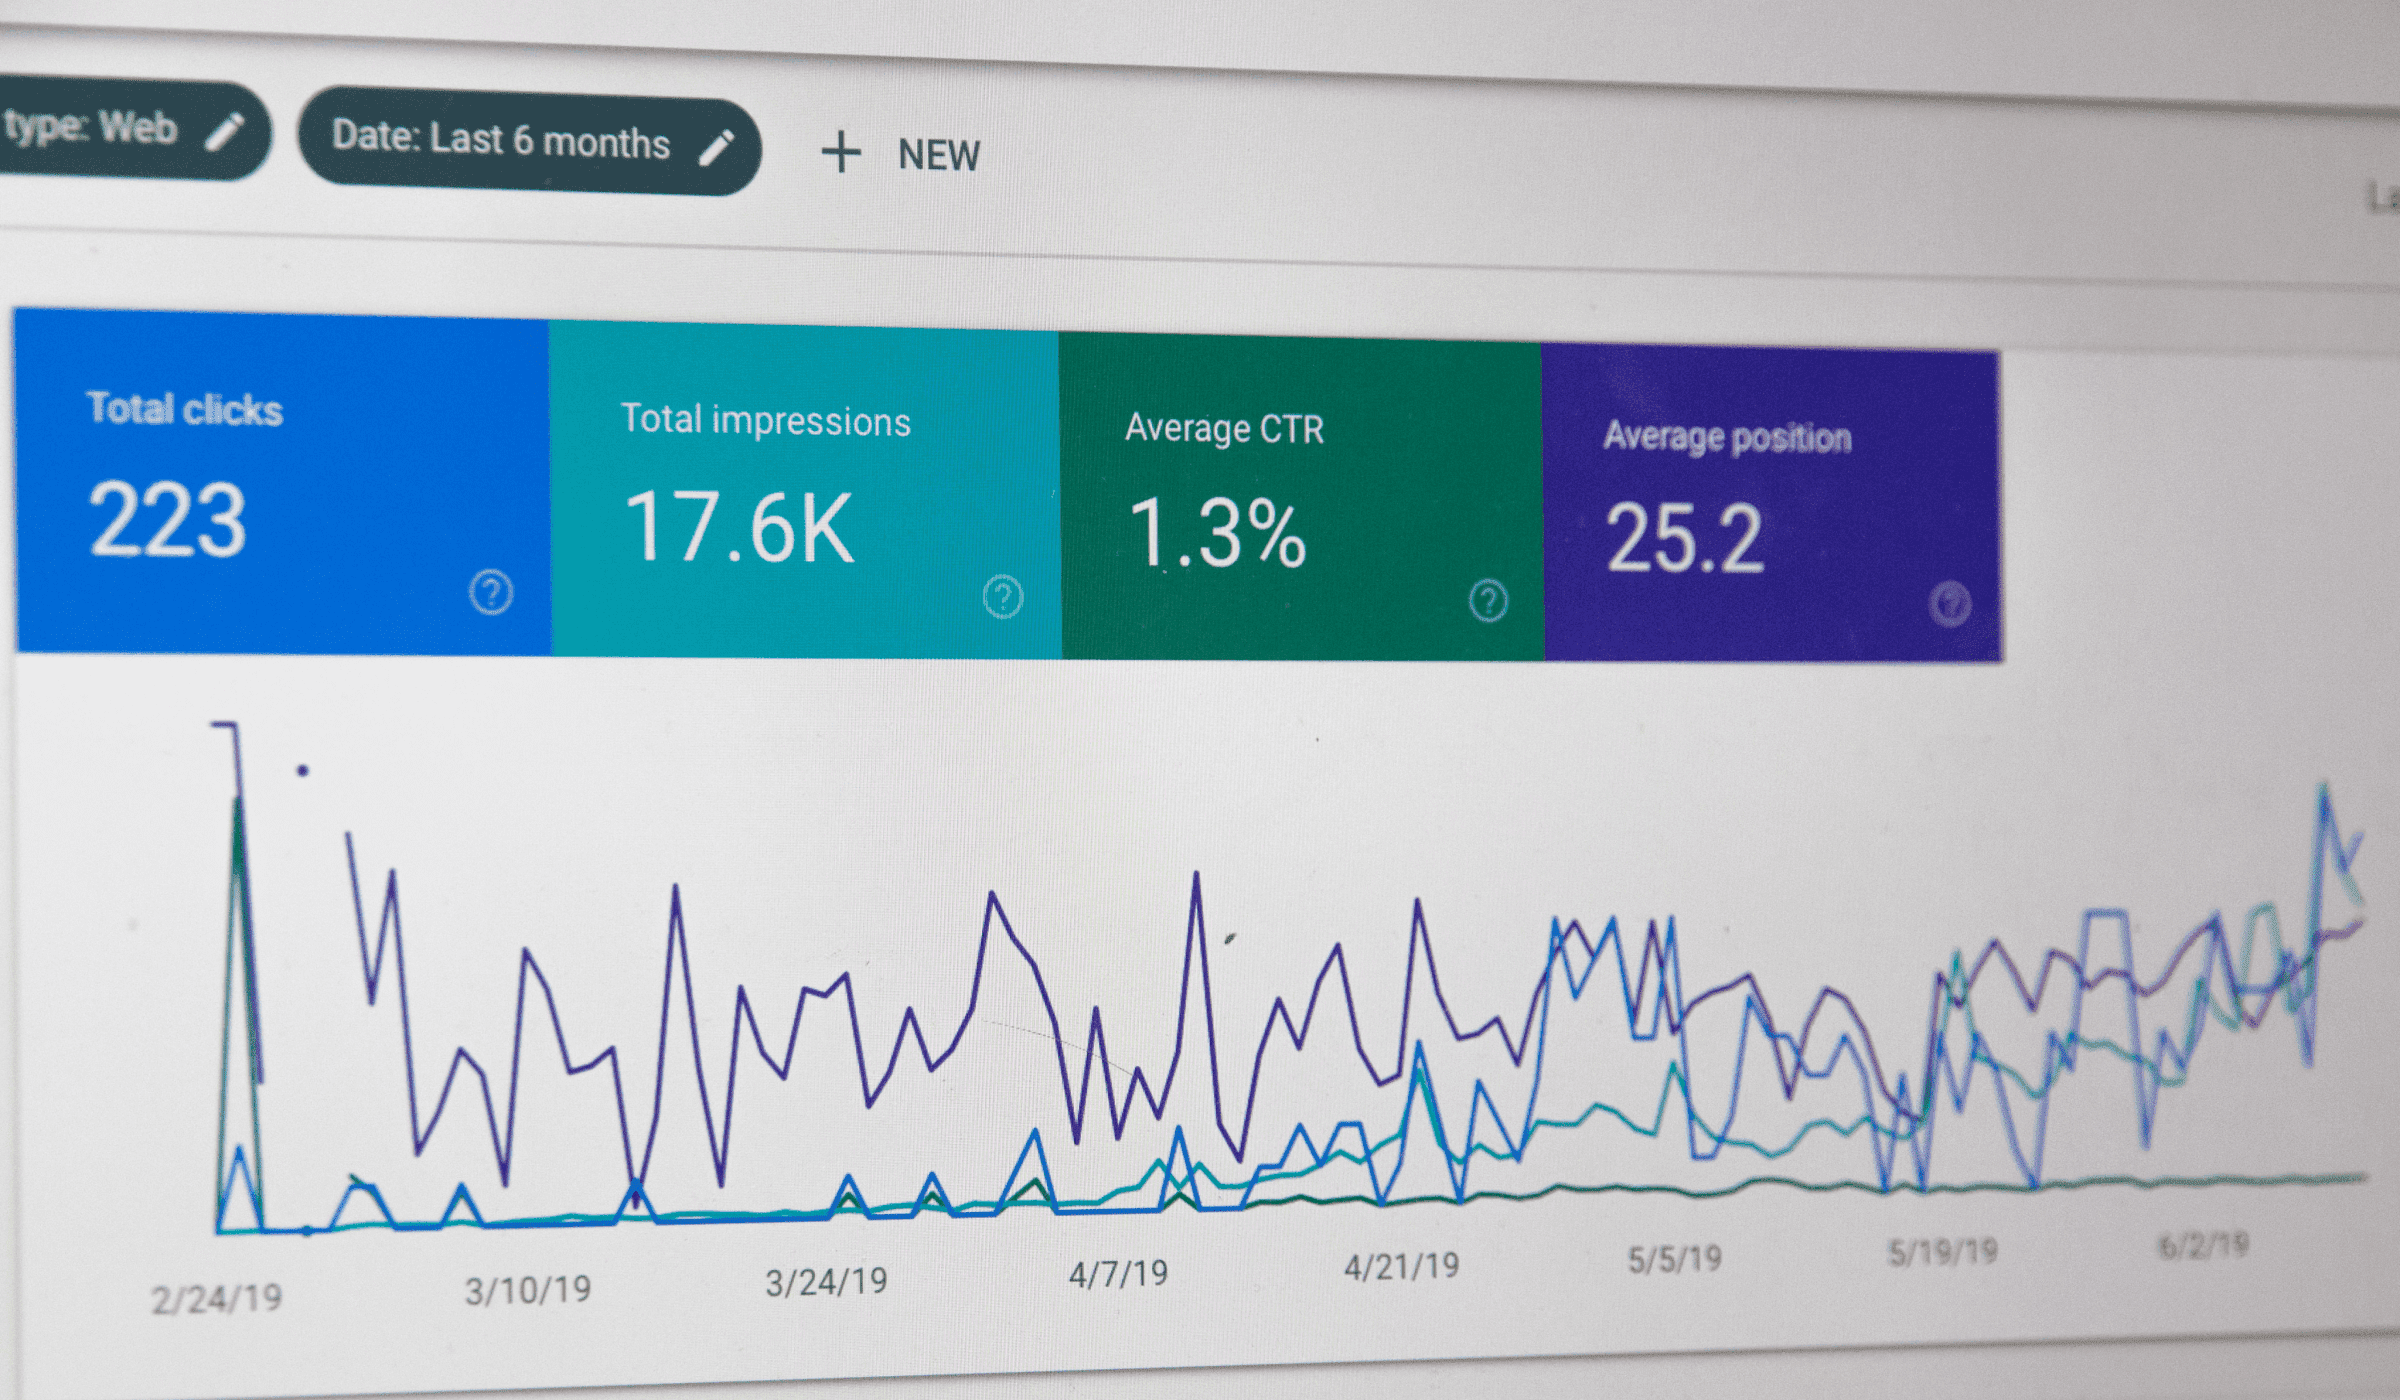 What is Technical SEO and how does it impact my site